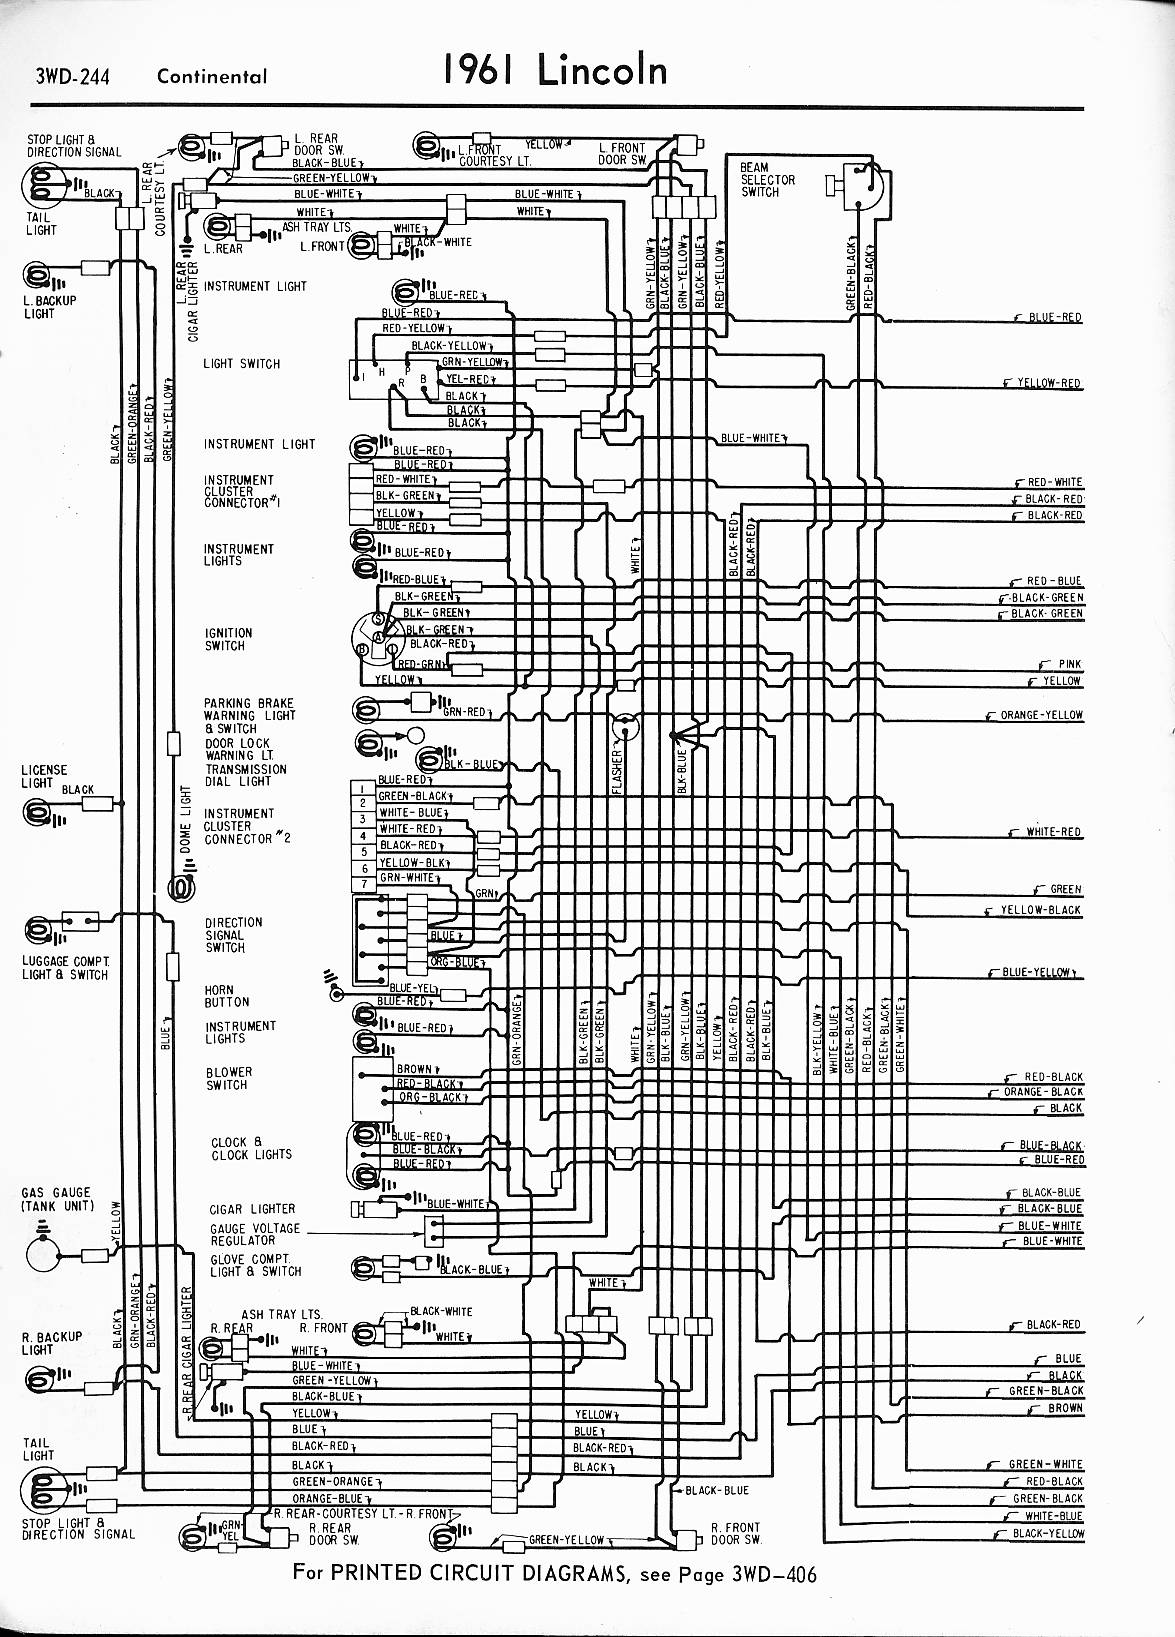 Lincoln Wiring Diagrams: 1957 - 1965The Old Car Manual Project